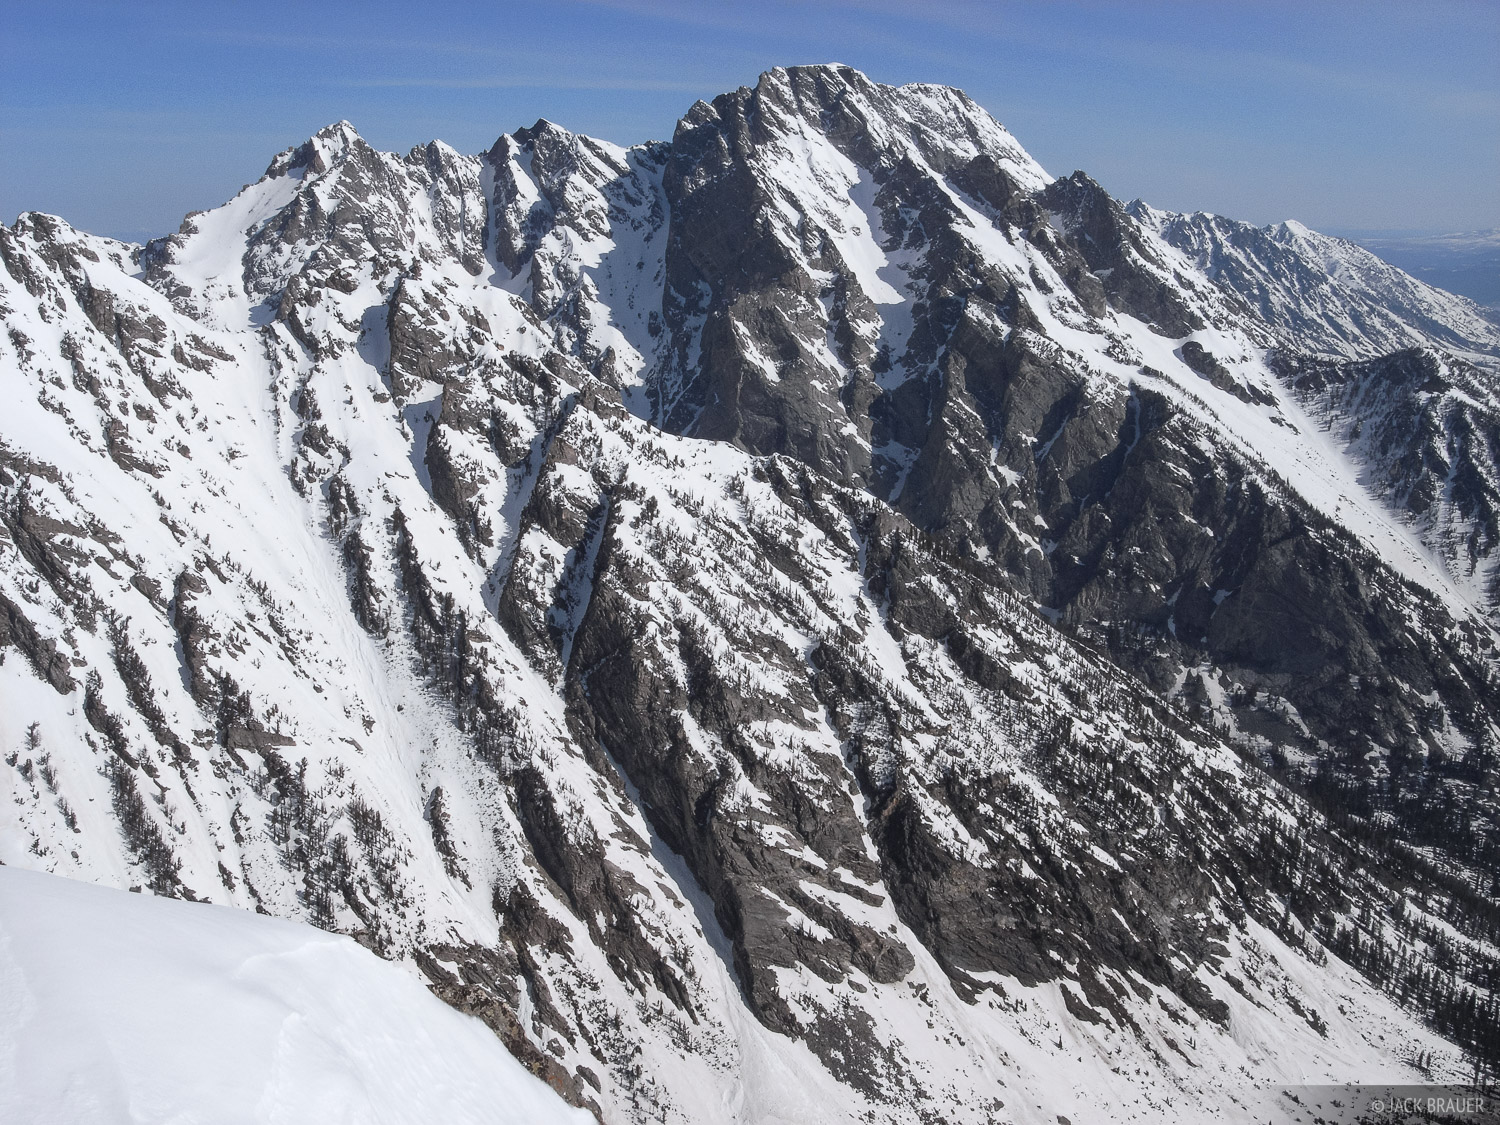 The rugged southern slopes of Mt. Moran, as seen from the summit of Rockchuck Peak.